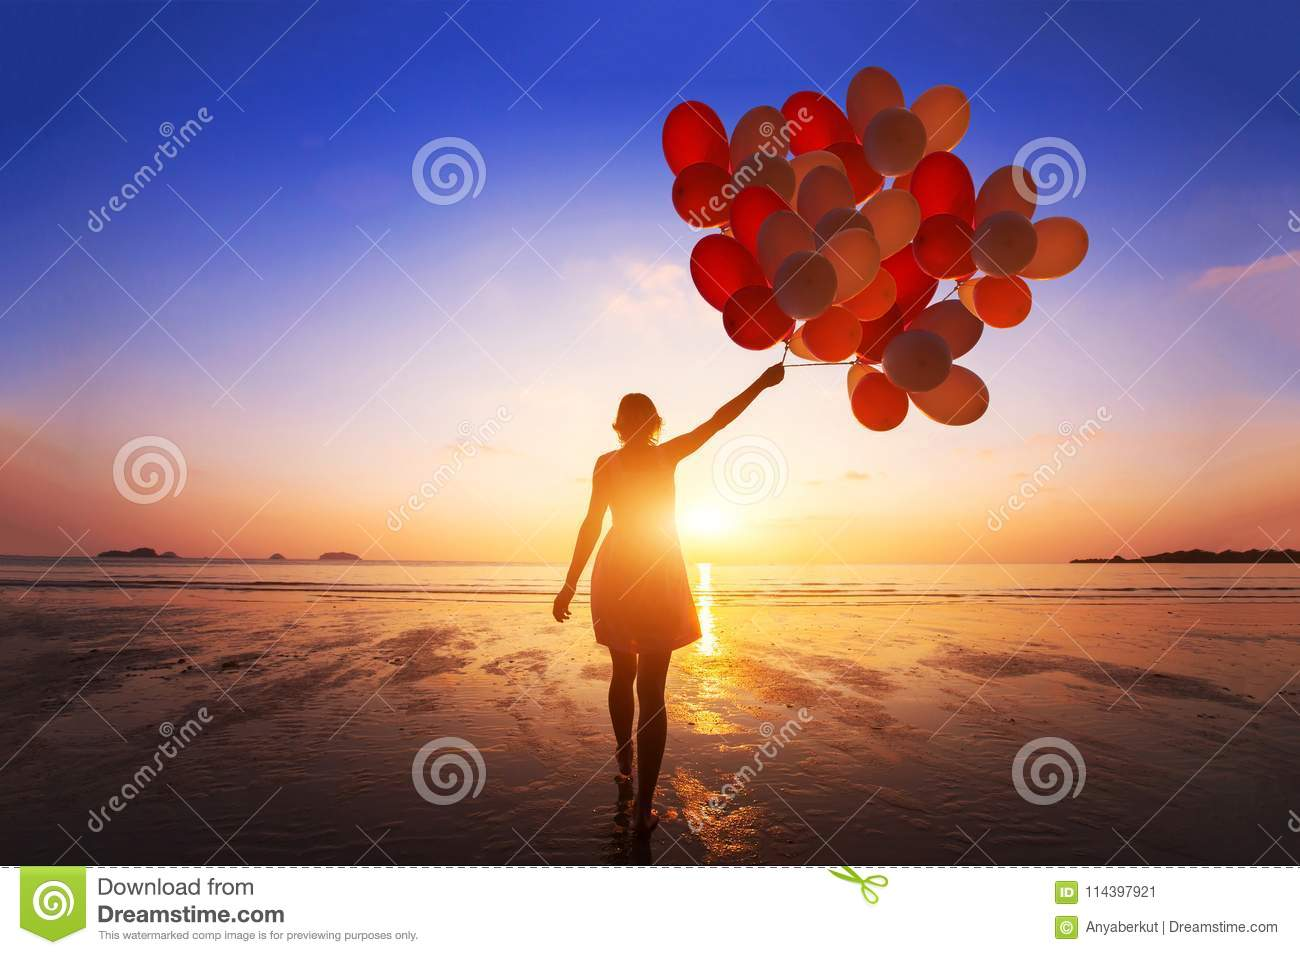 Inspiration, joy and happiness concept, silhouette of woman with many flying balloons